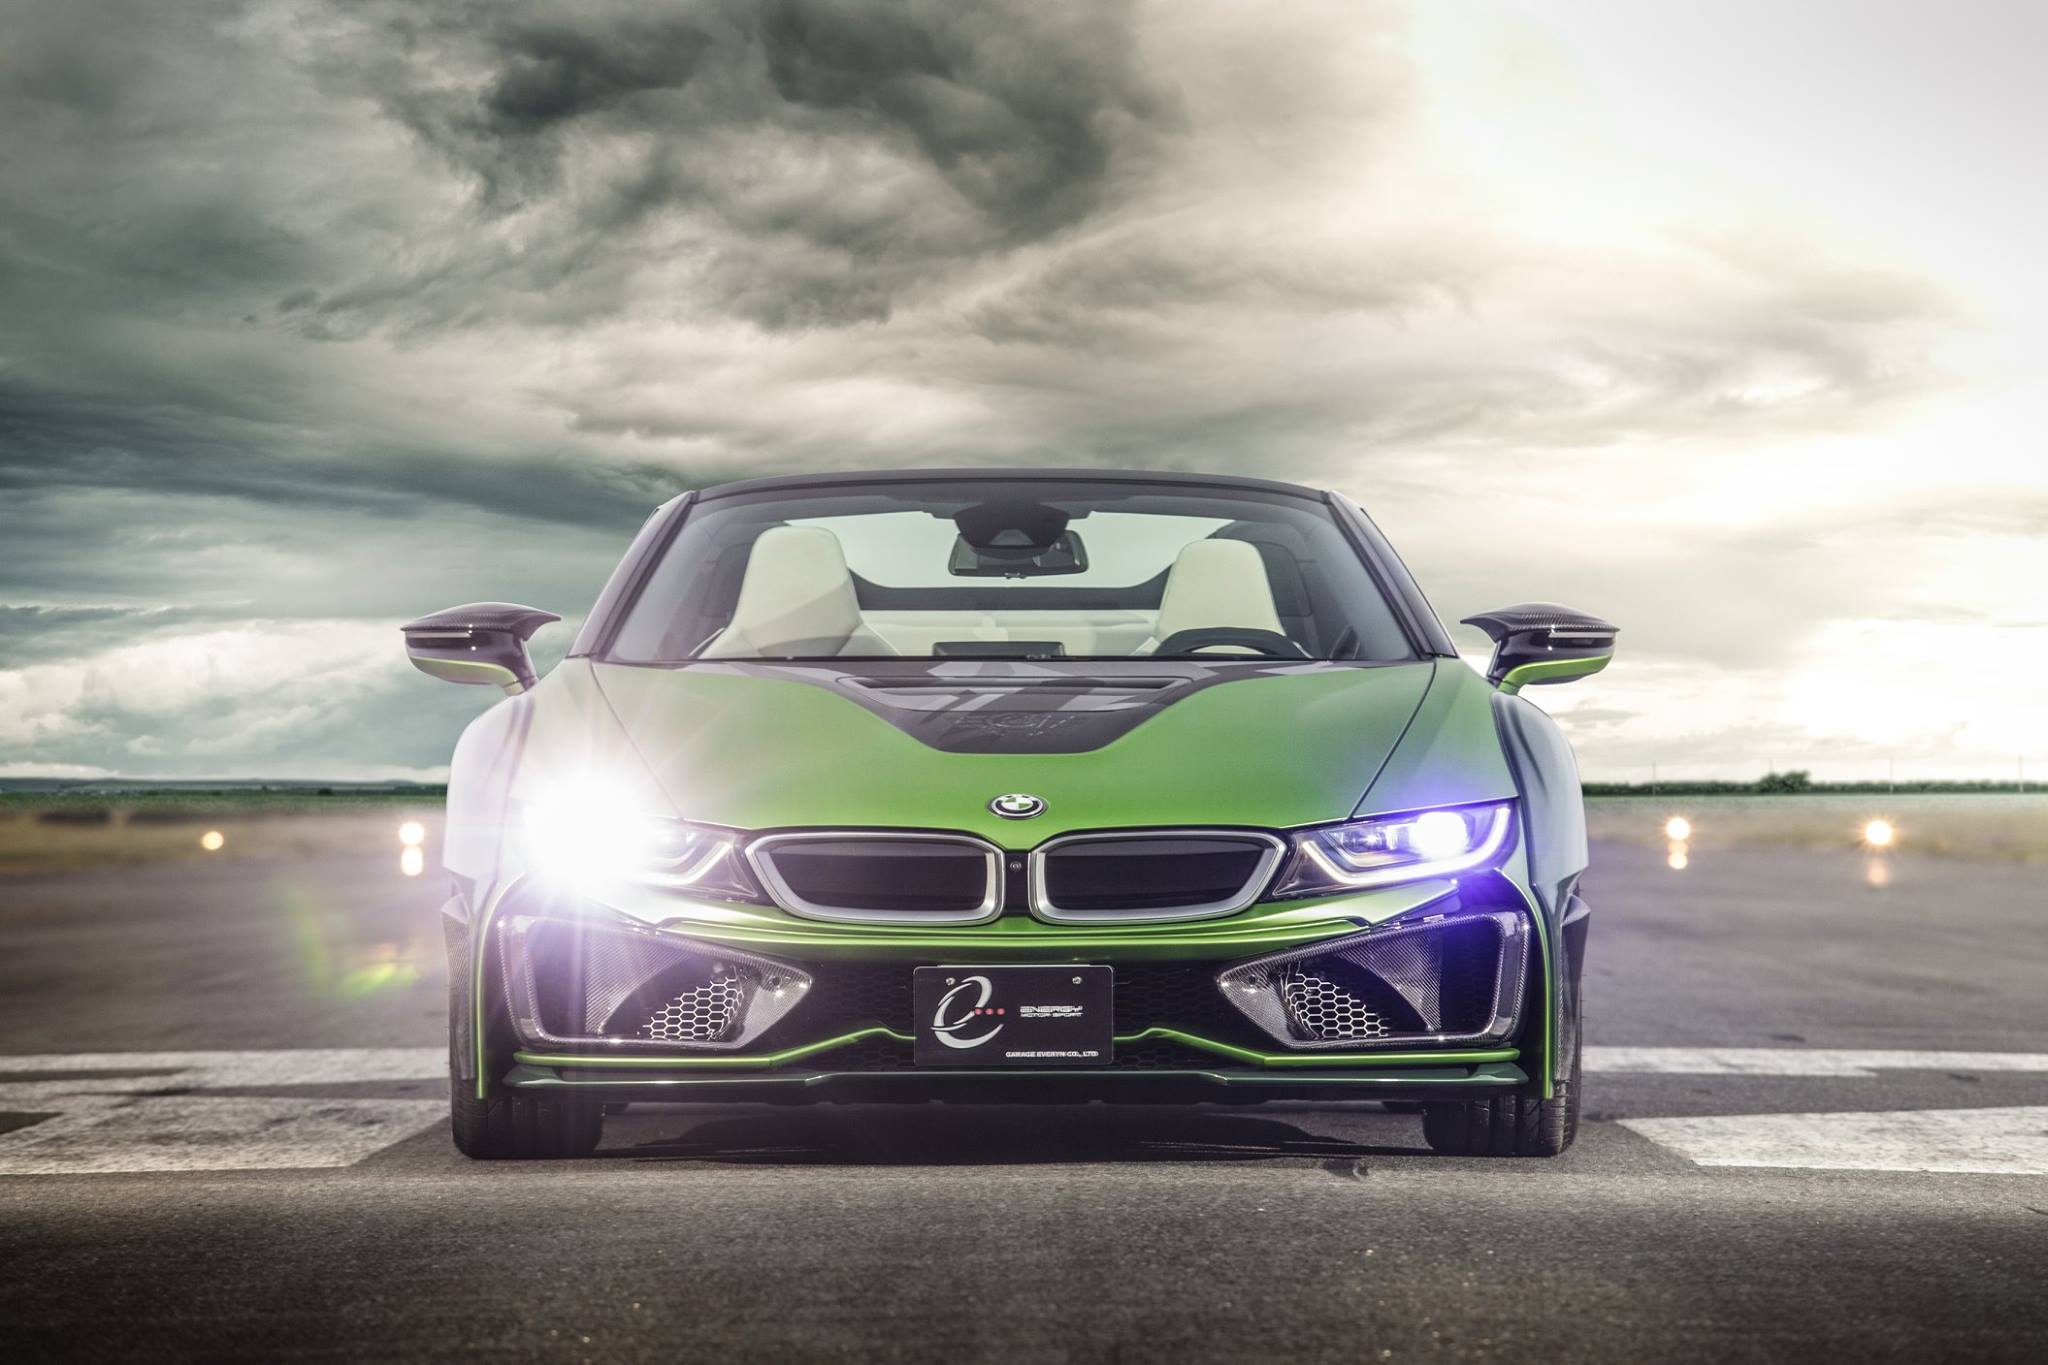 BMW-i8-Roadster-Army-Edition-by-EVE.RYN-7